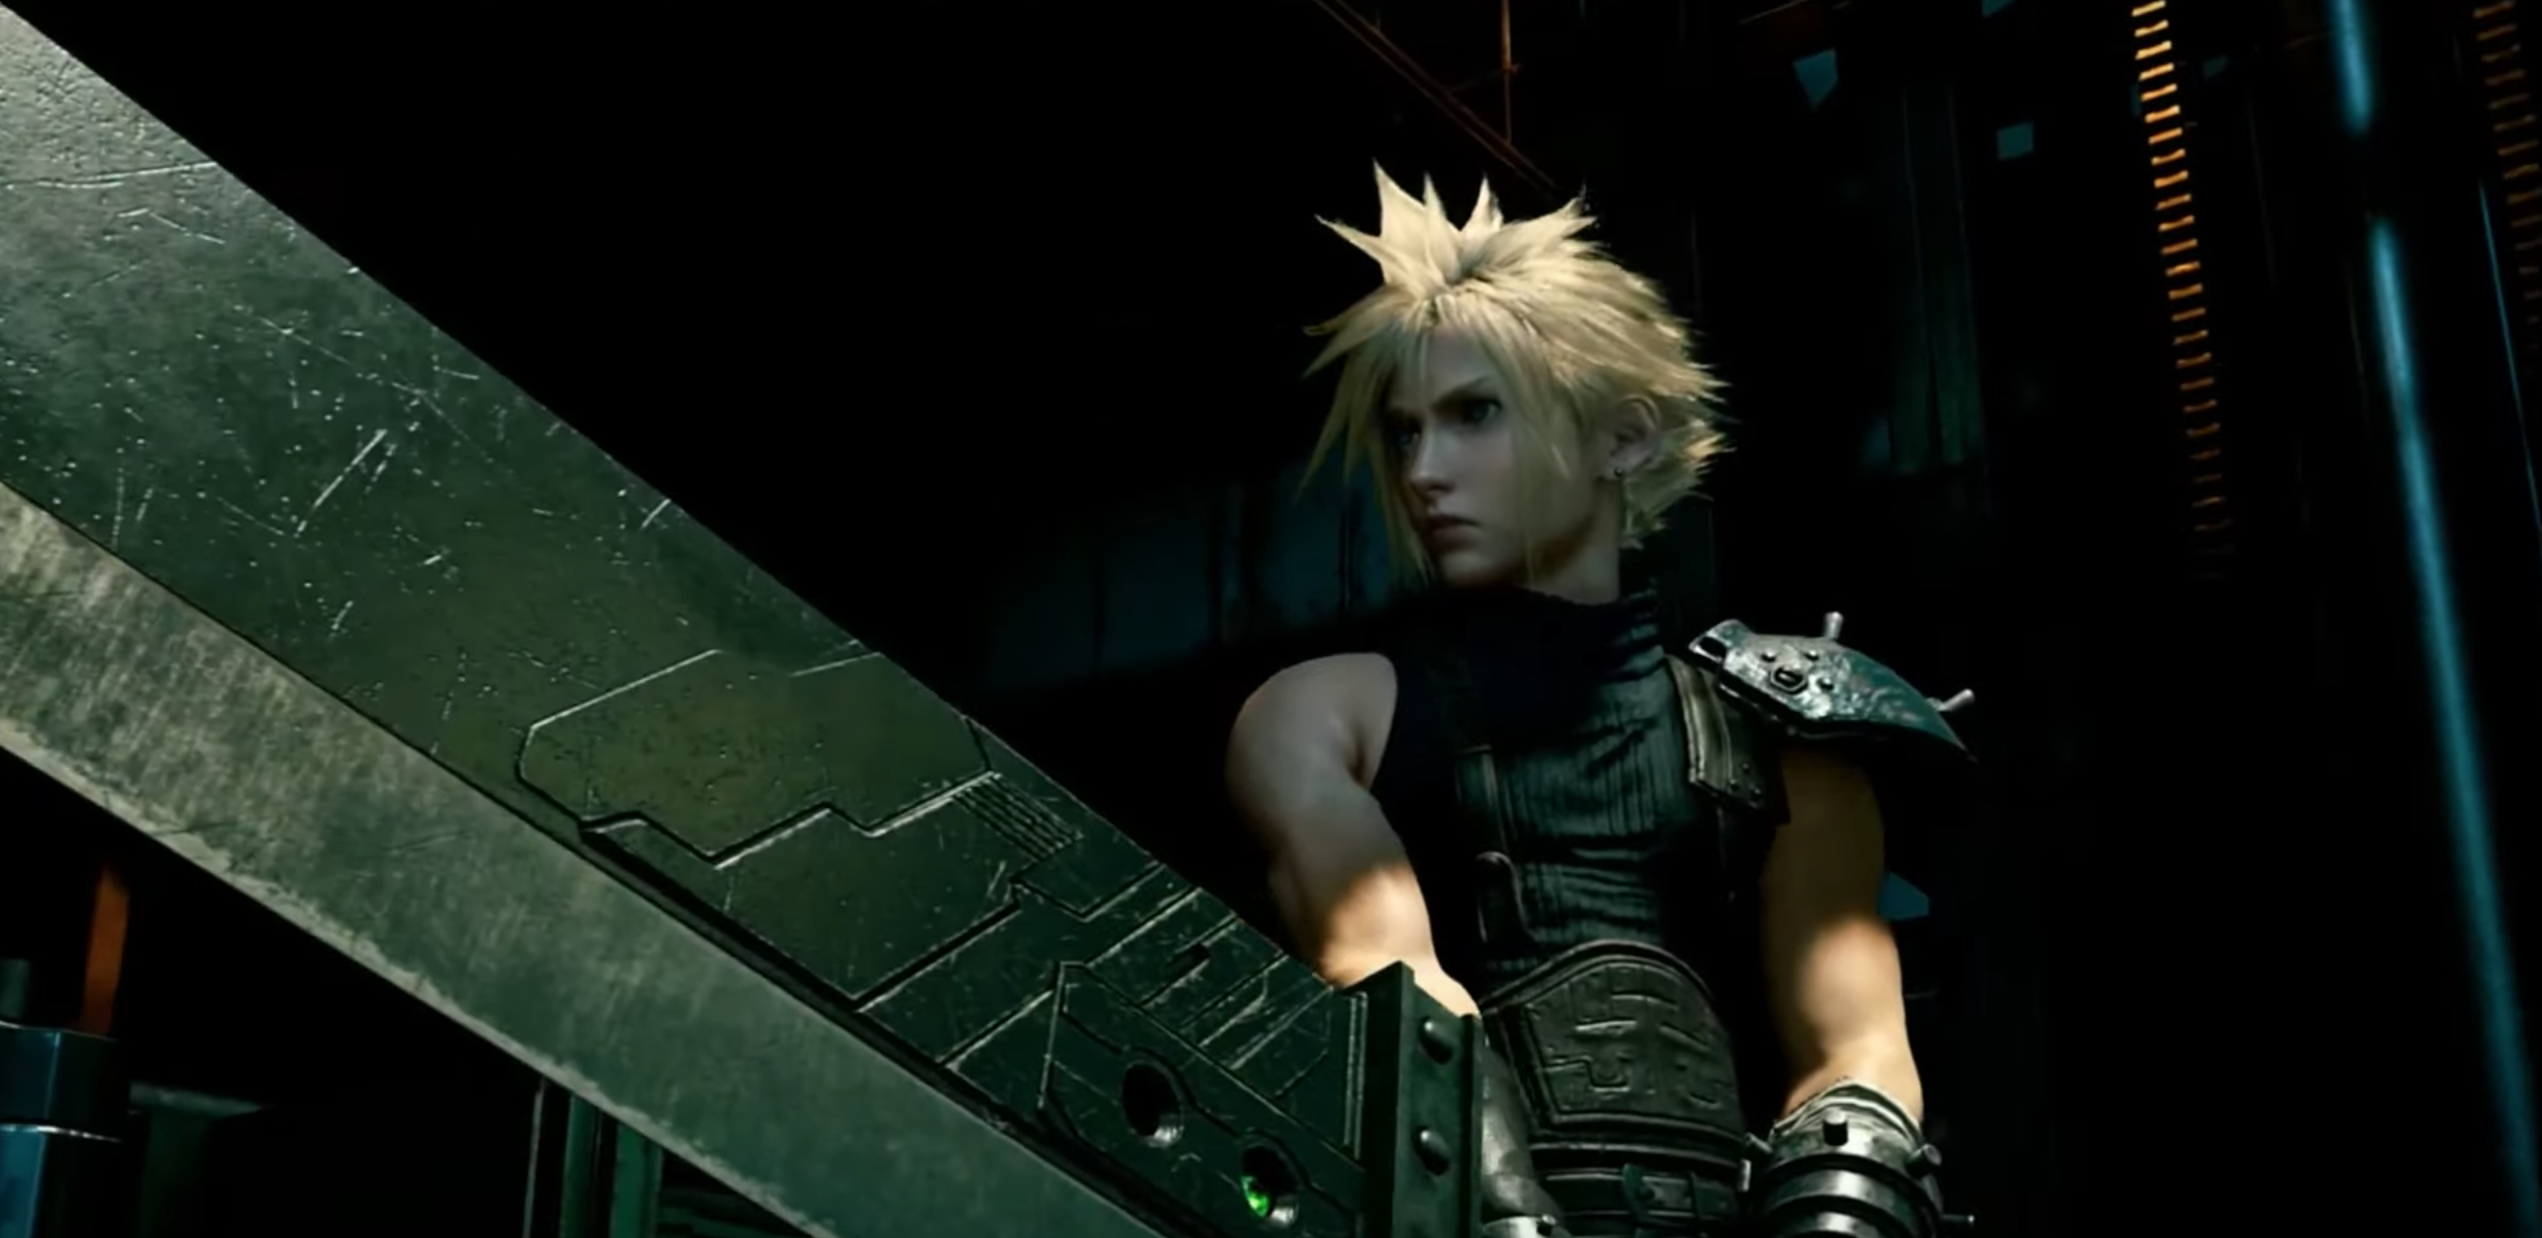 Final Fantasy VII Remake Feels Great To Play, But The Project Might Not Be Finished For A While